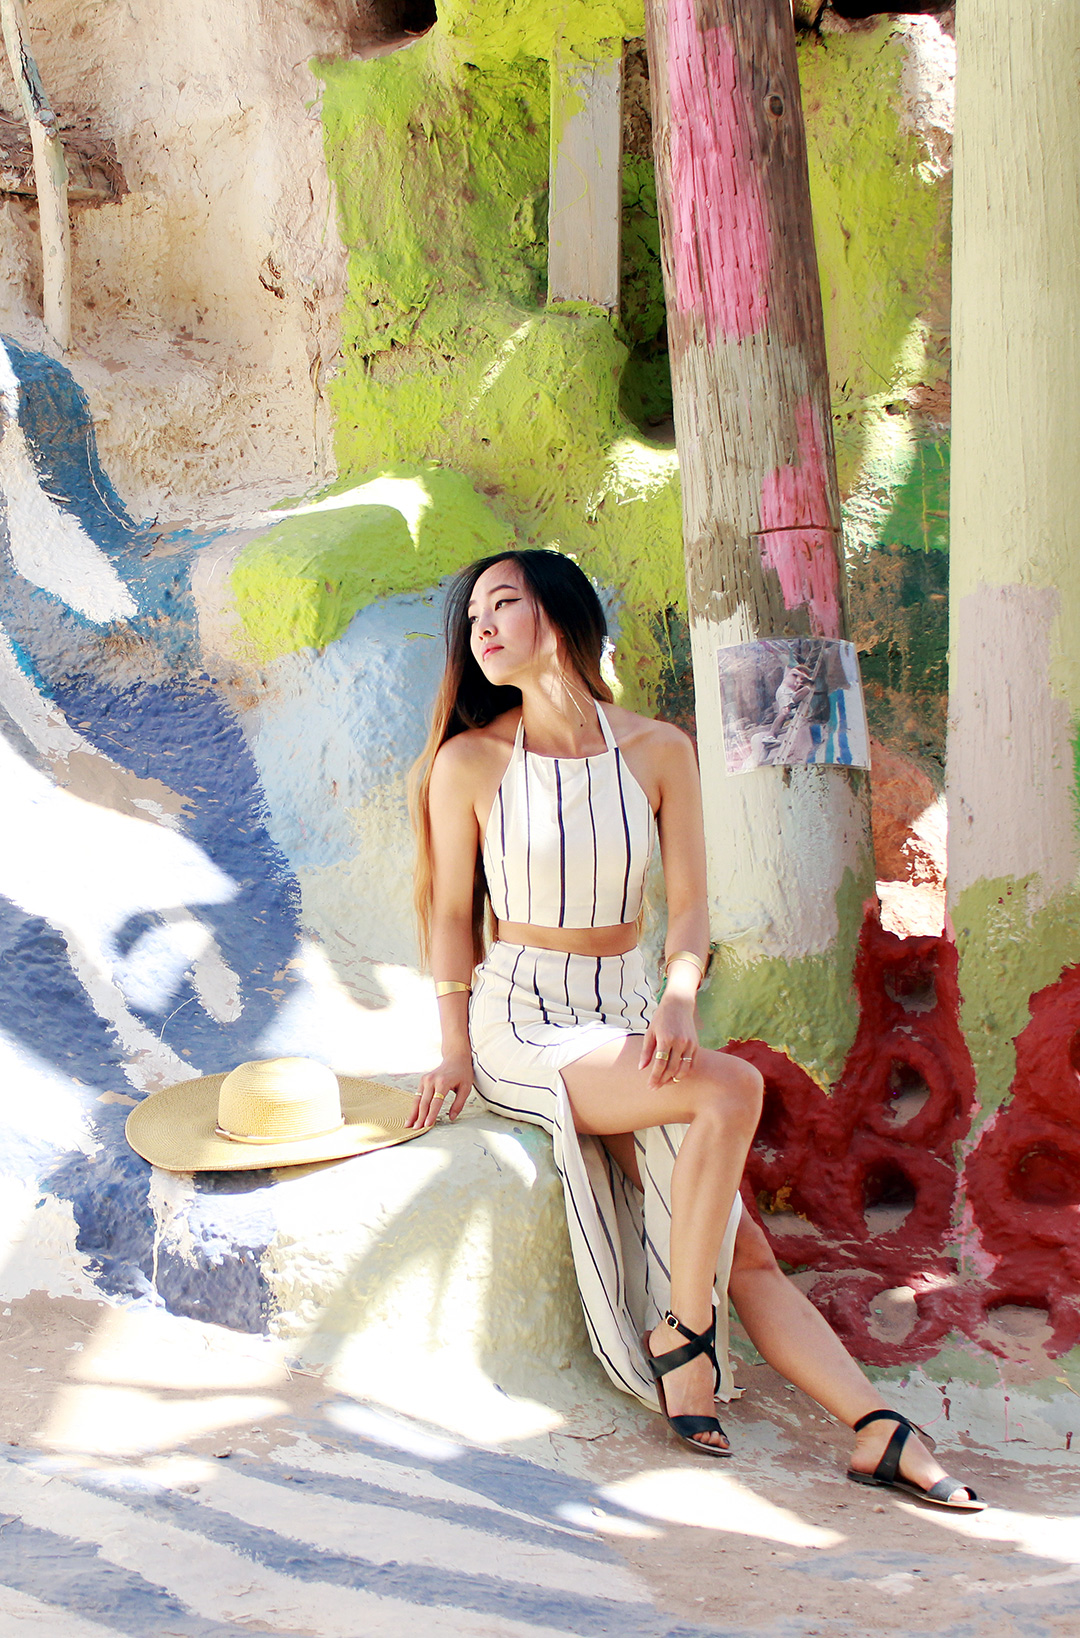 Enjoying the soft shadow play inside Salvation Mountain. Dress by Tobi, J. Crew sandals, Nine West hat, Madewell cuff bracelets